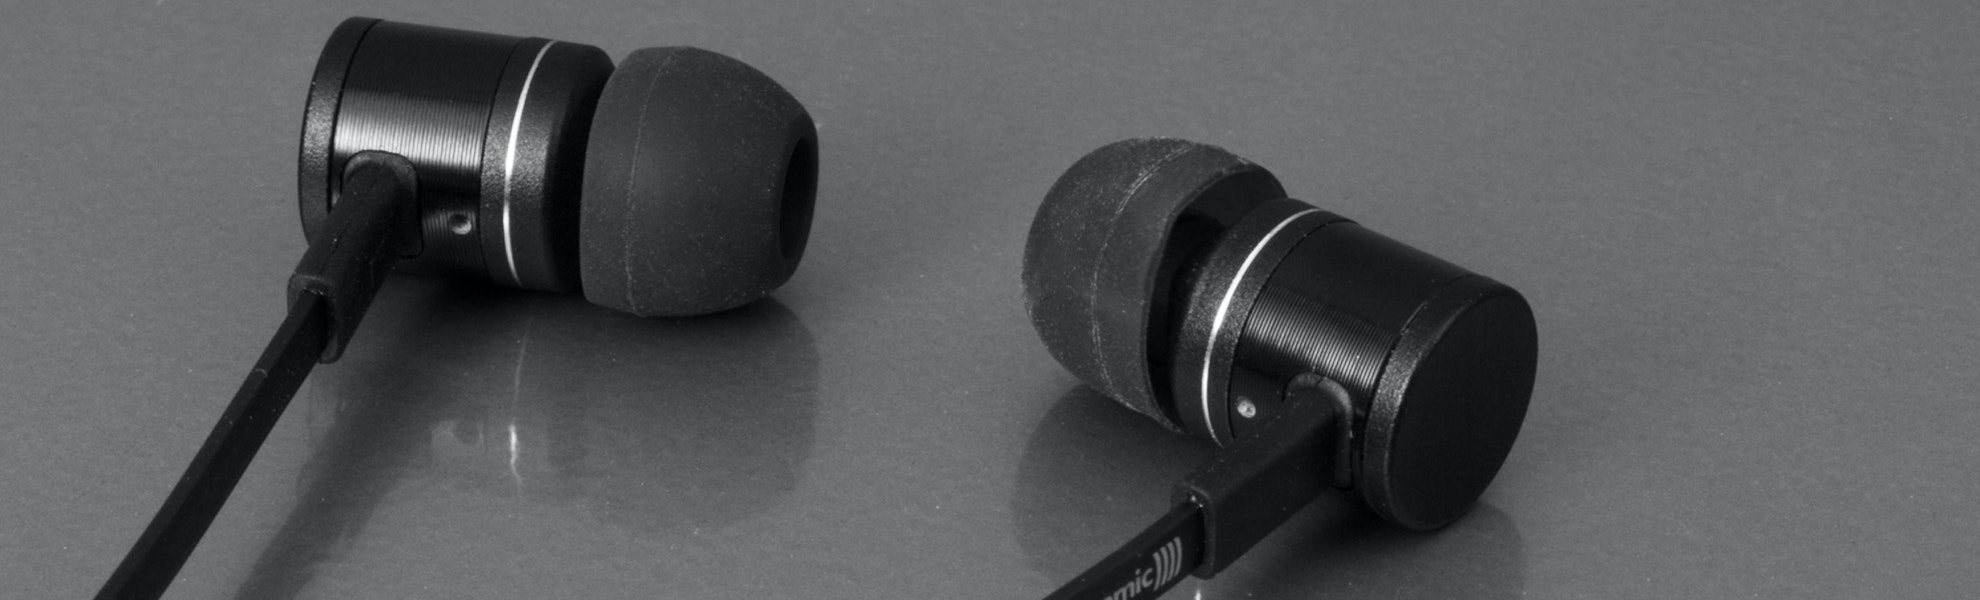 Beyerdynamic DX 120 iE Earphones